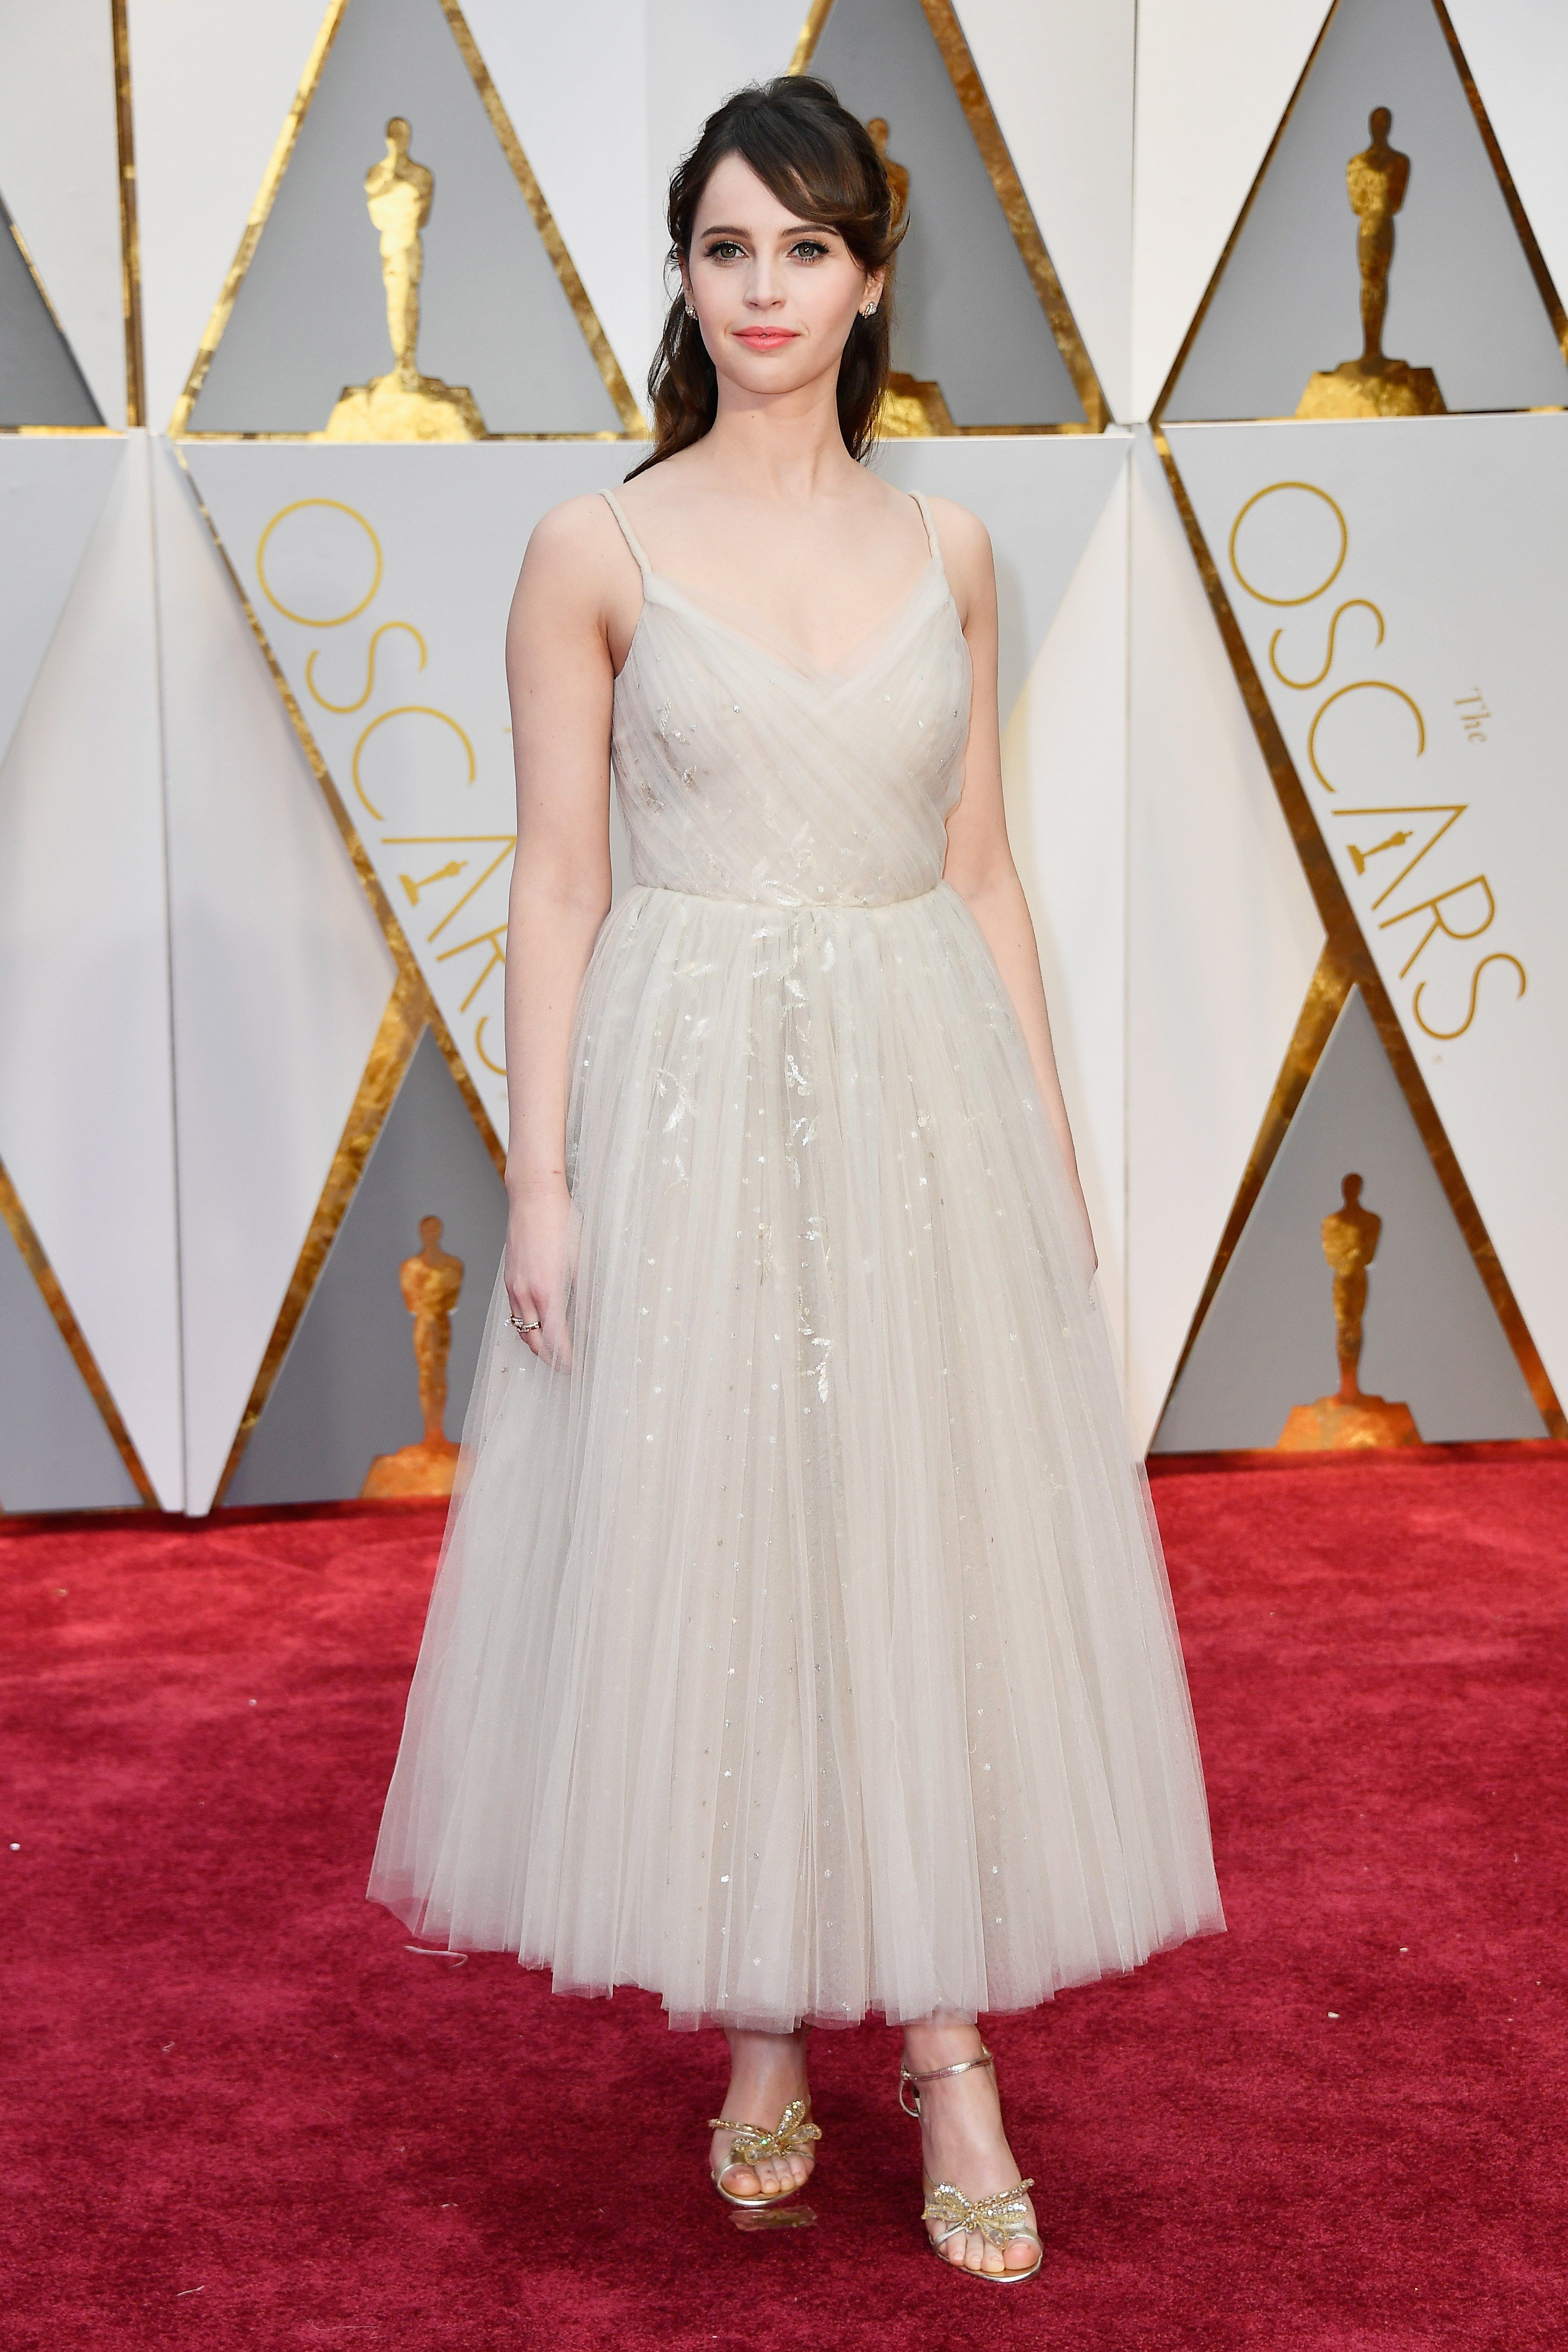 2017 Oscars - Felicity Jones in Christian Dior Couture